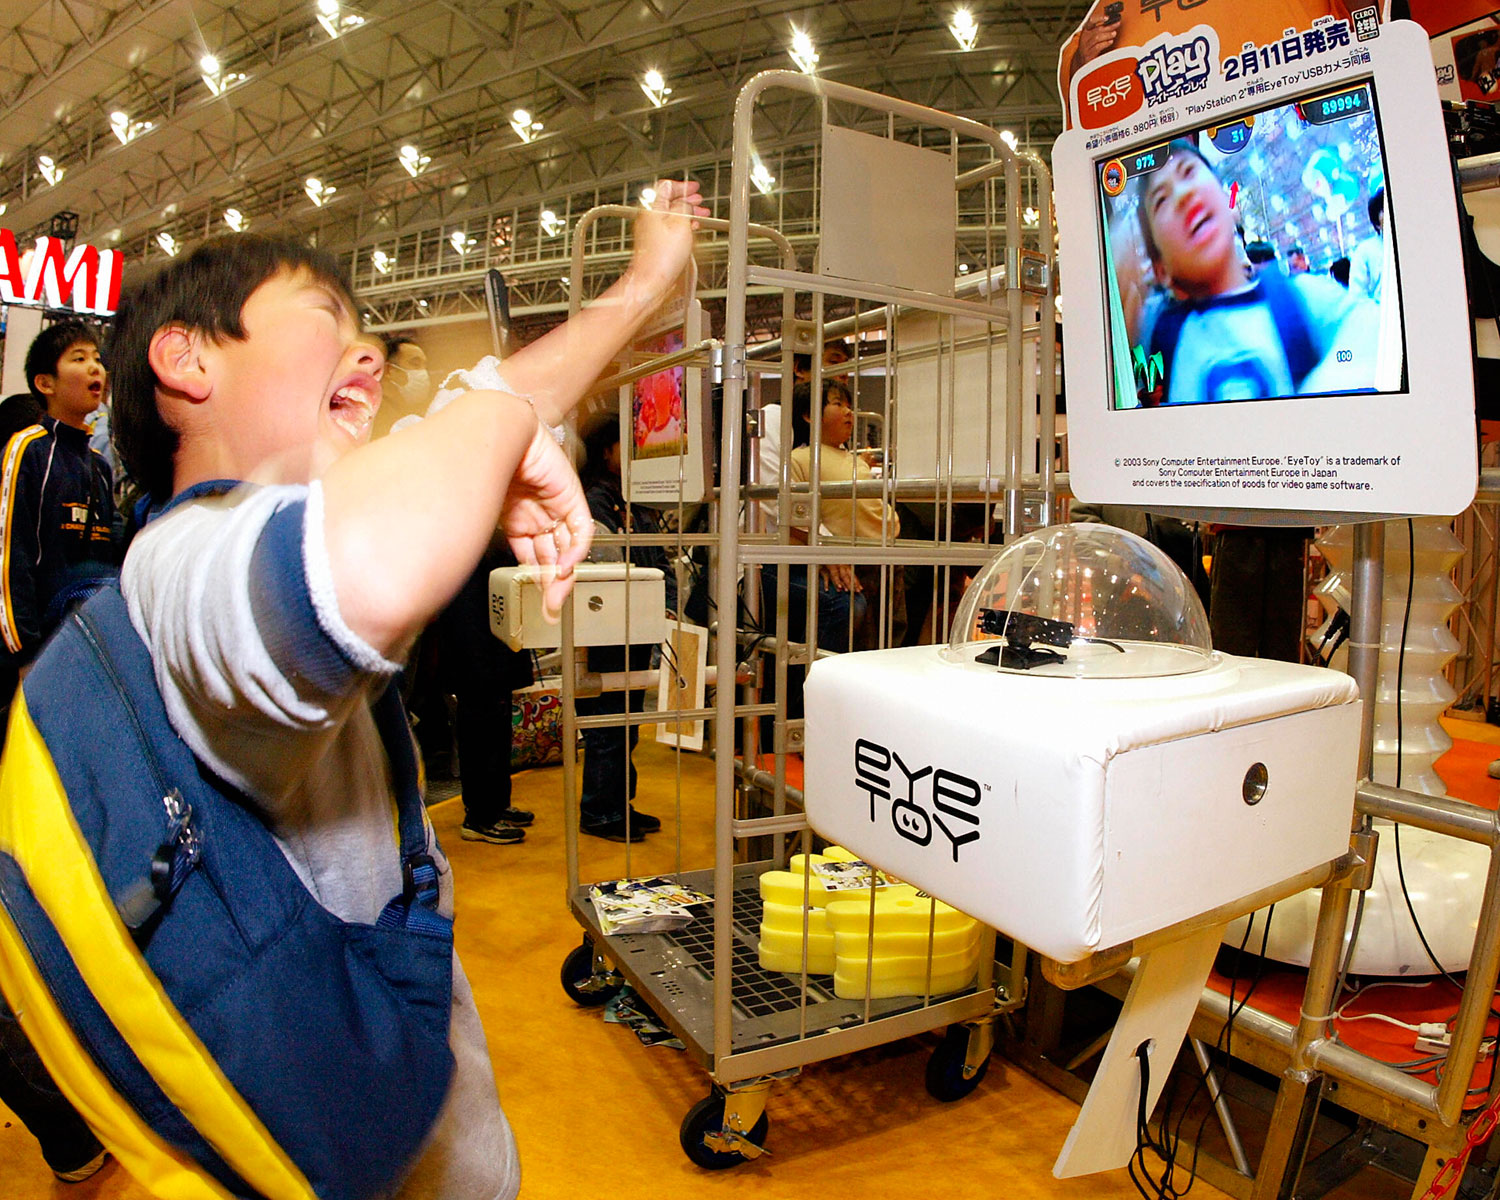 A Japanese boy tries out Sony Computer Entertainment's 'eye TOY' motion capture camera for the company's PlayStation 2 video game console at the World Hobby Fair in Makuhari, Tokyo on January 24, 2004.